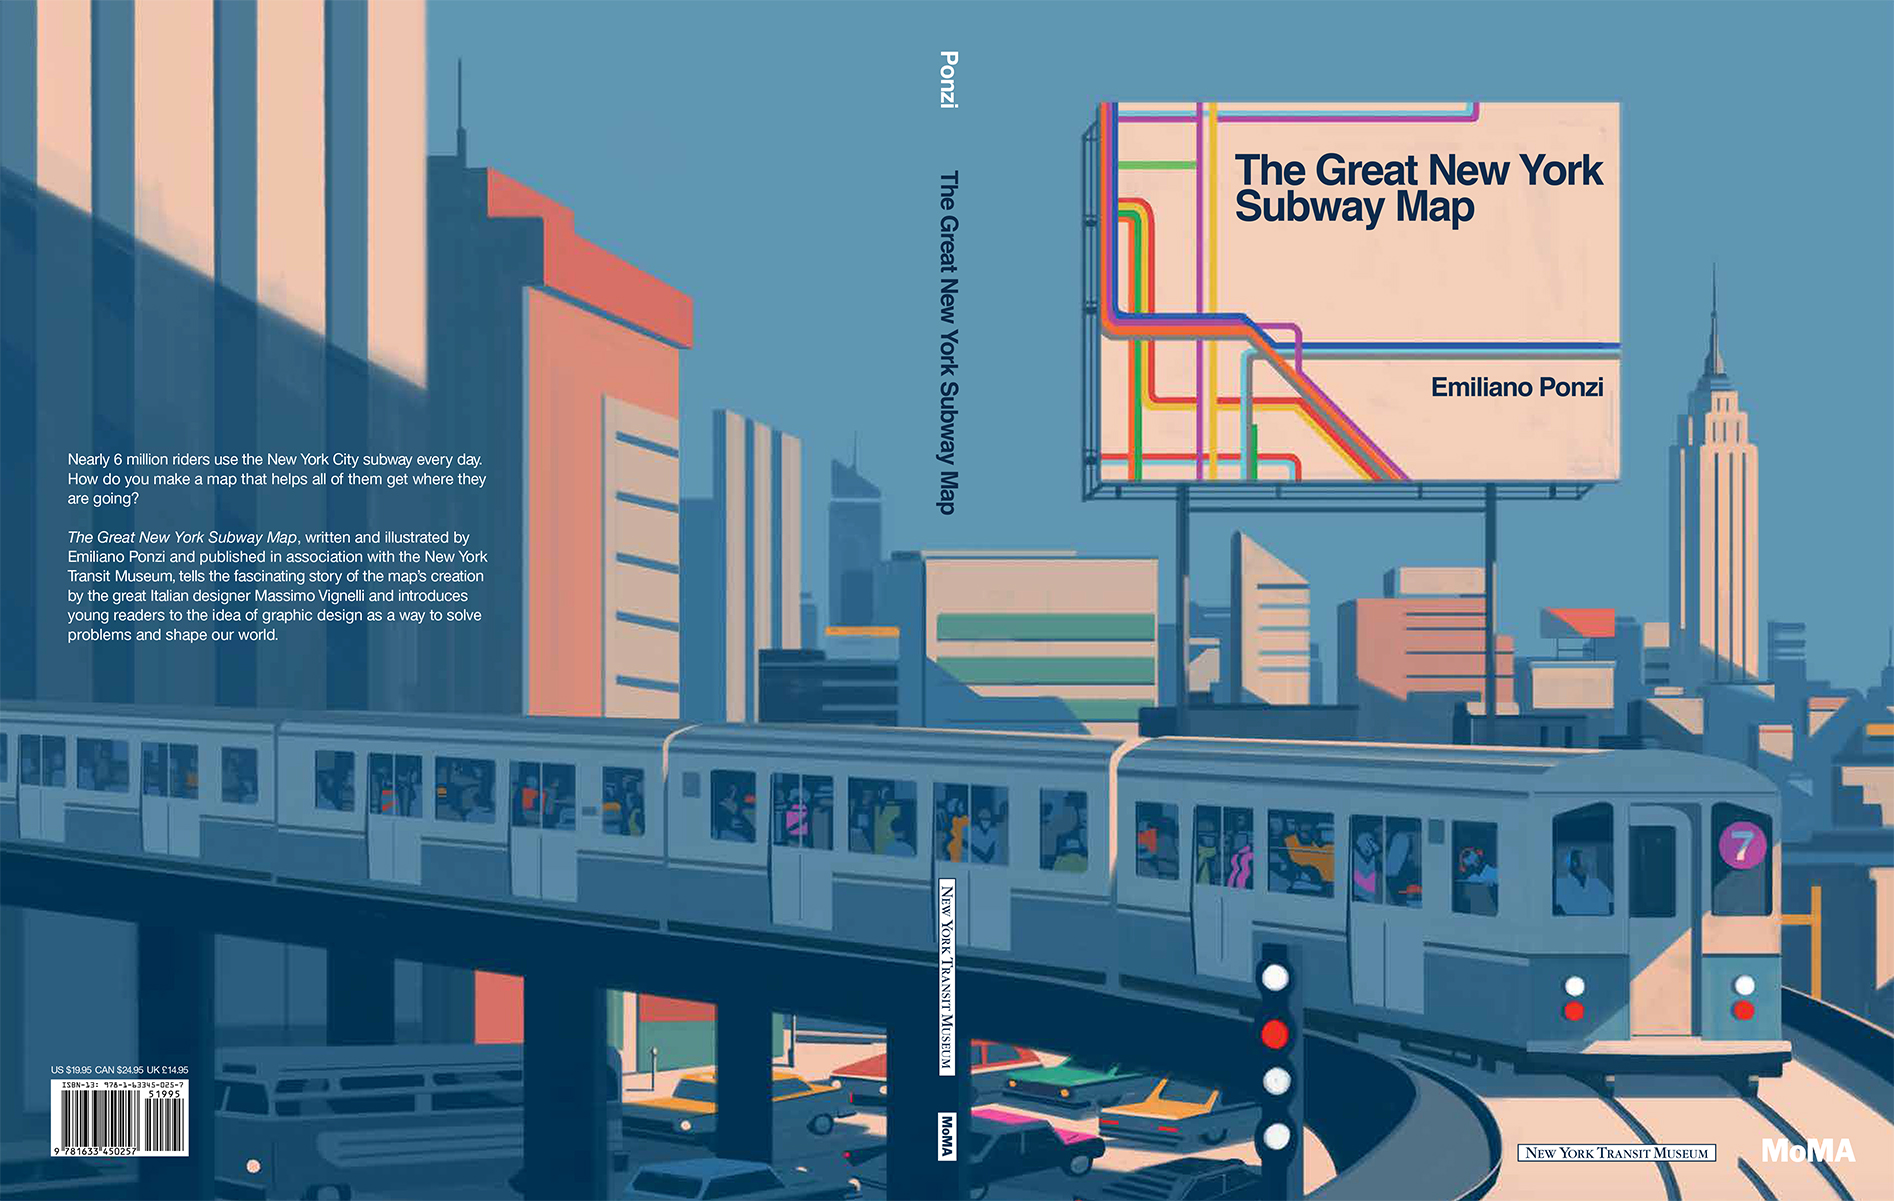 New York City Subway Map Design.Emiliano Ponzi The Aoi